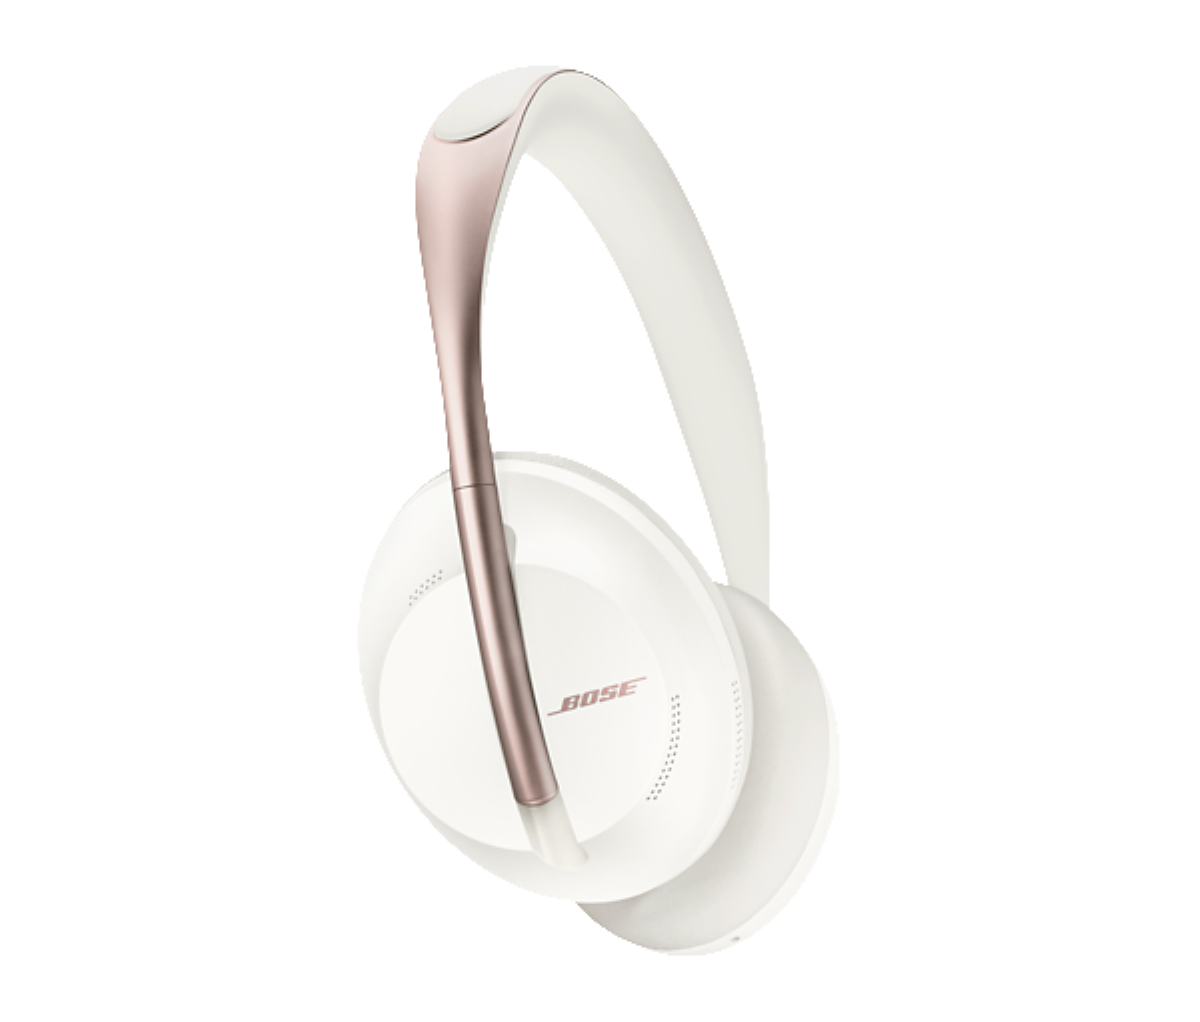 Bose Noise Cancelling Headphones 700 - Bose is closing all of its retail stores